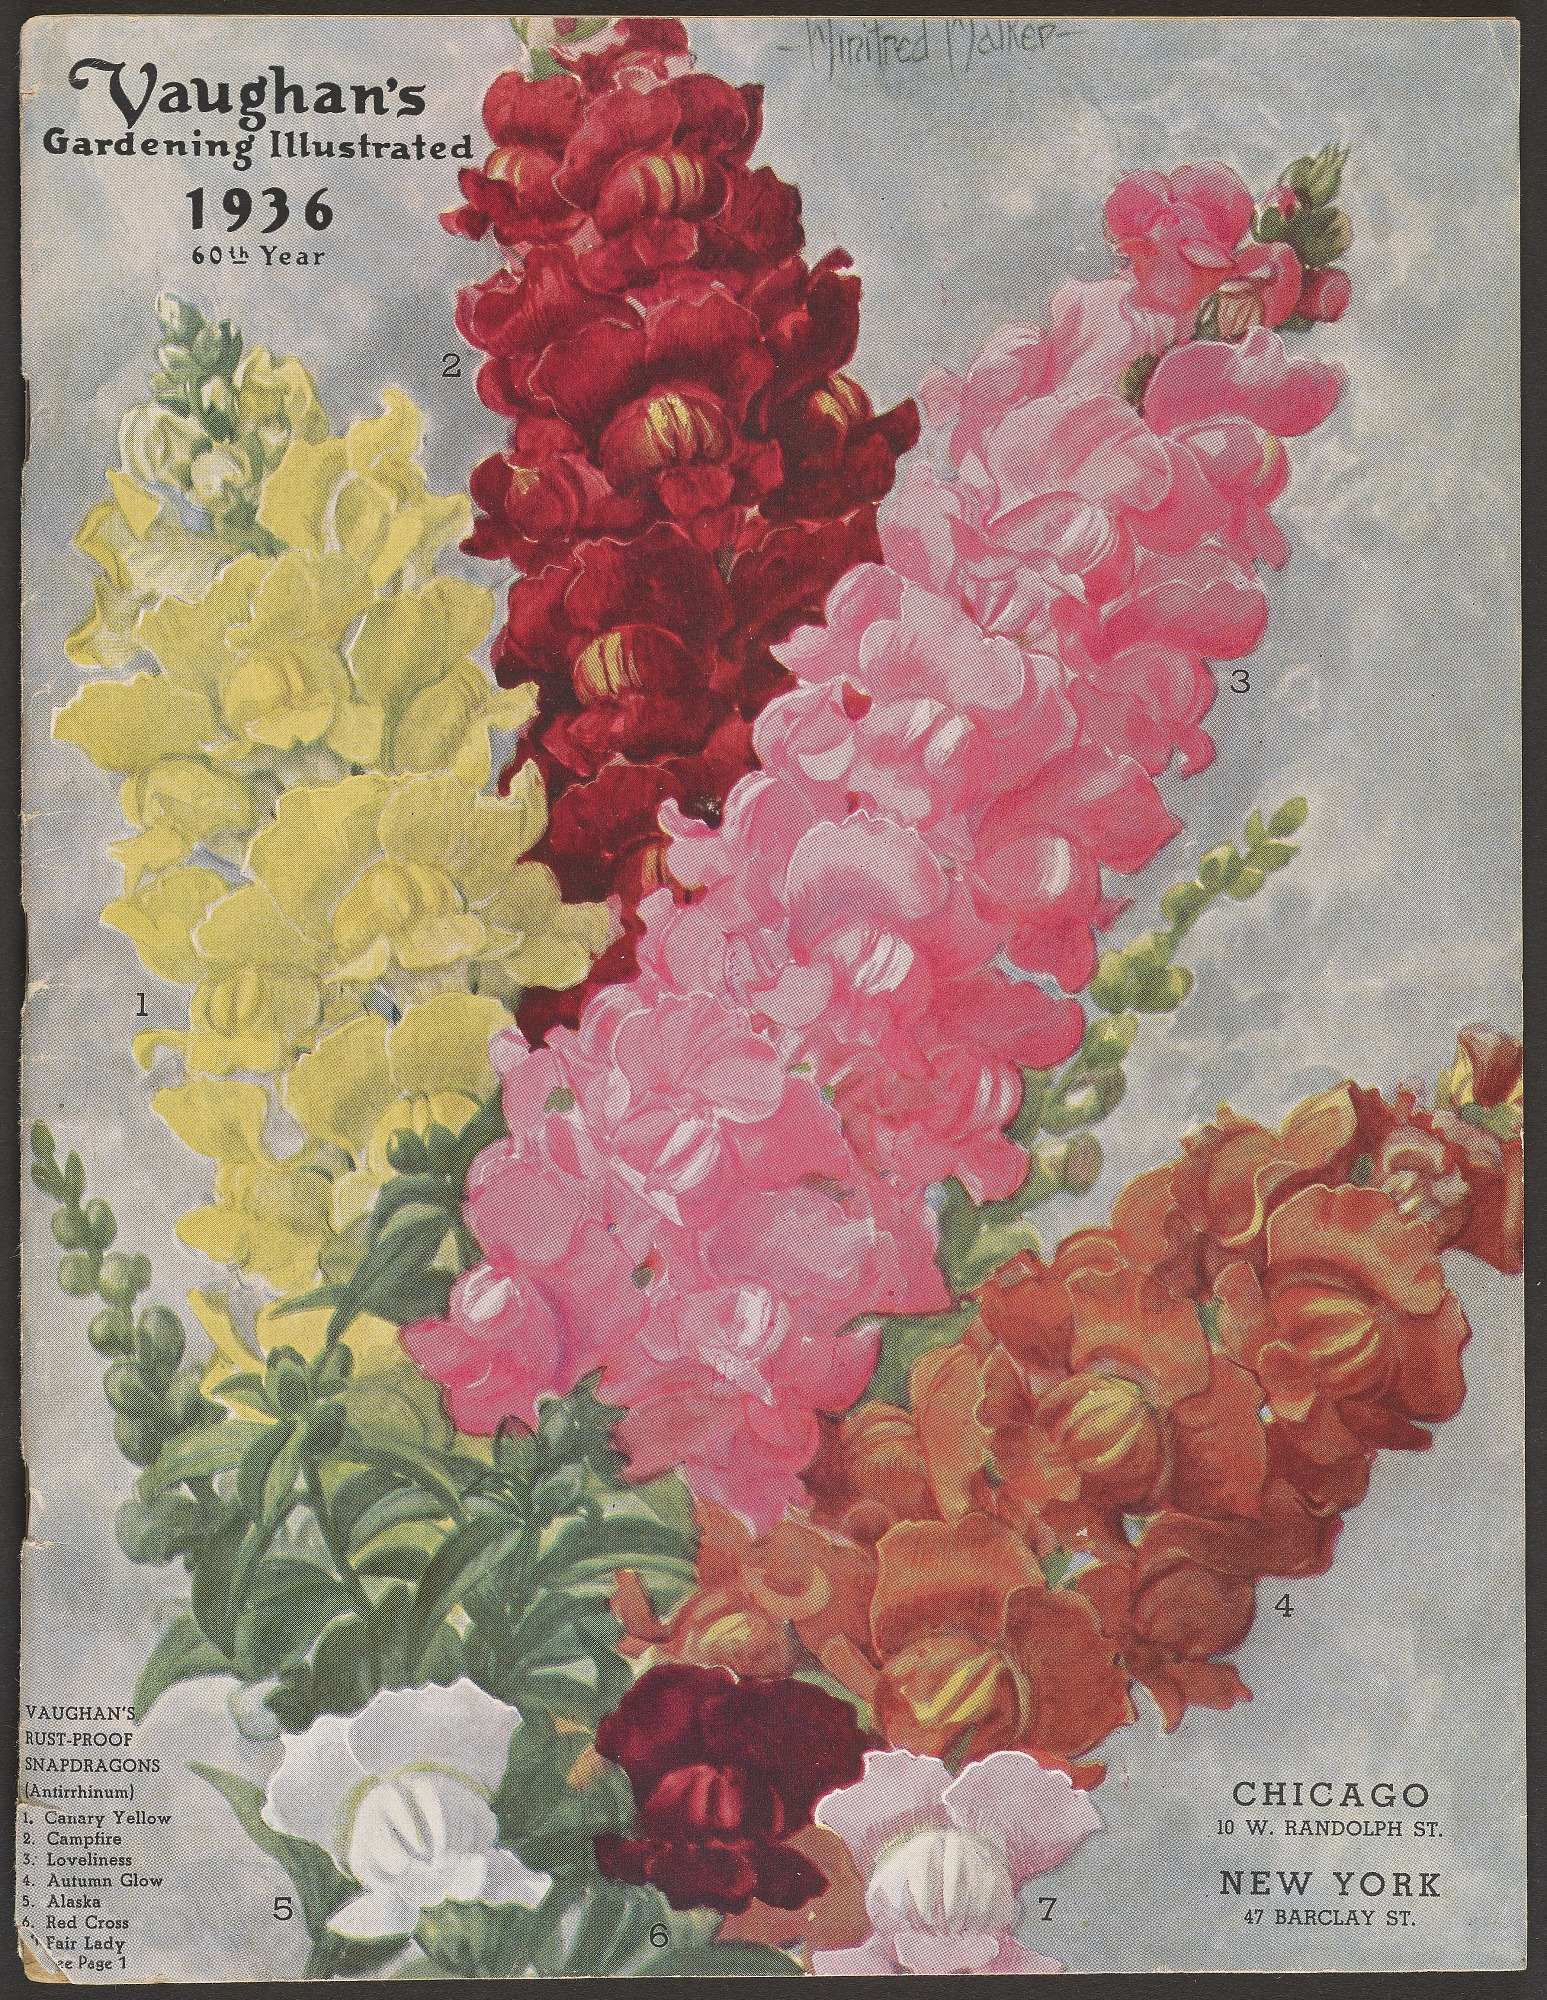 Vaughan's Gardening Illustrated, 1936